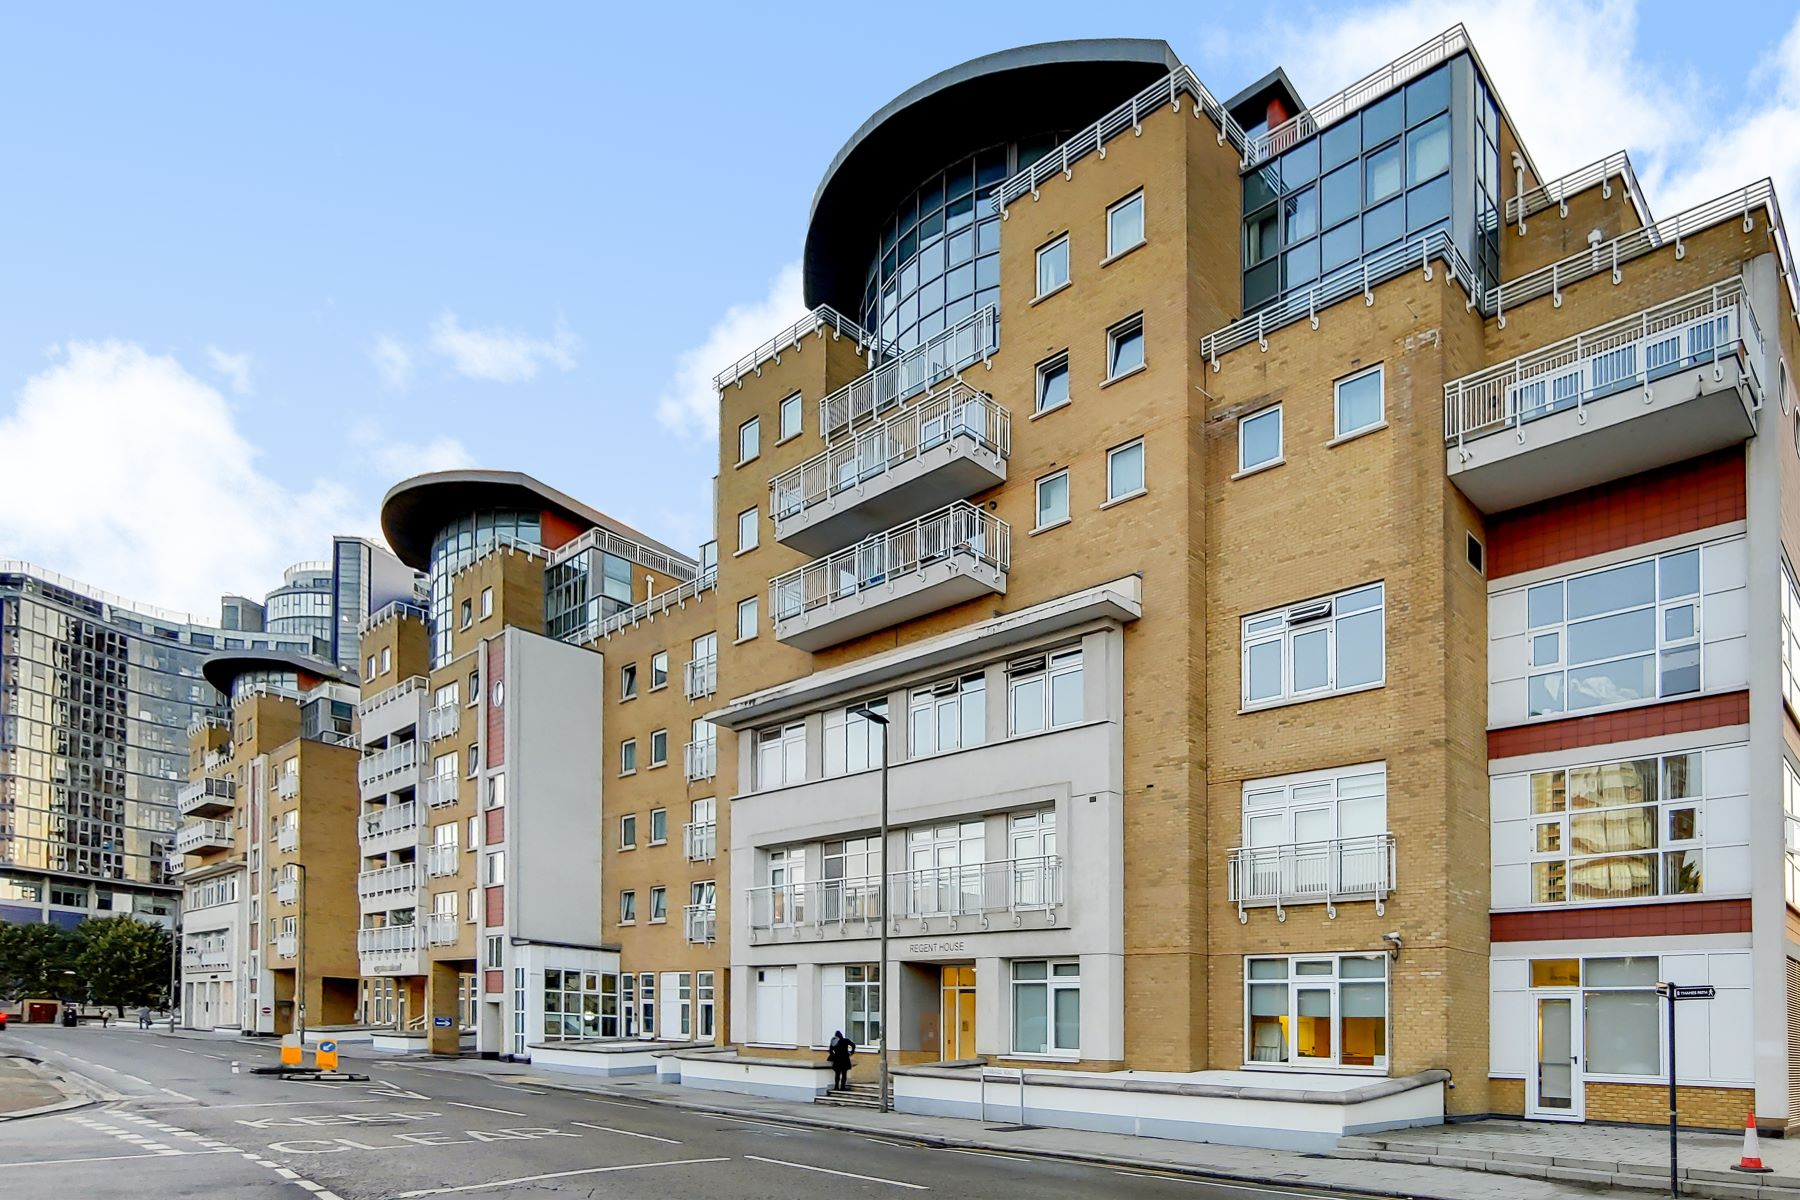 Apartments for Sale at Apartment 68 Oyster Wharf London, England SW11 3RR United Kingdom